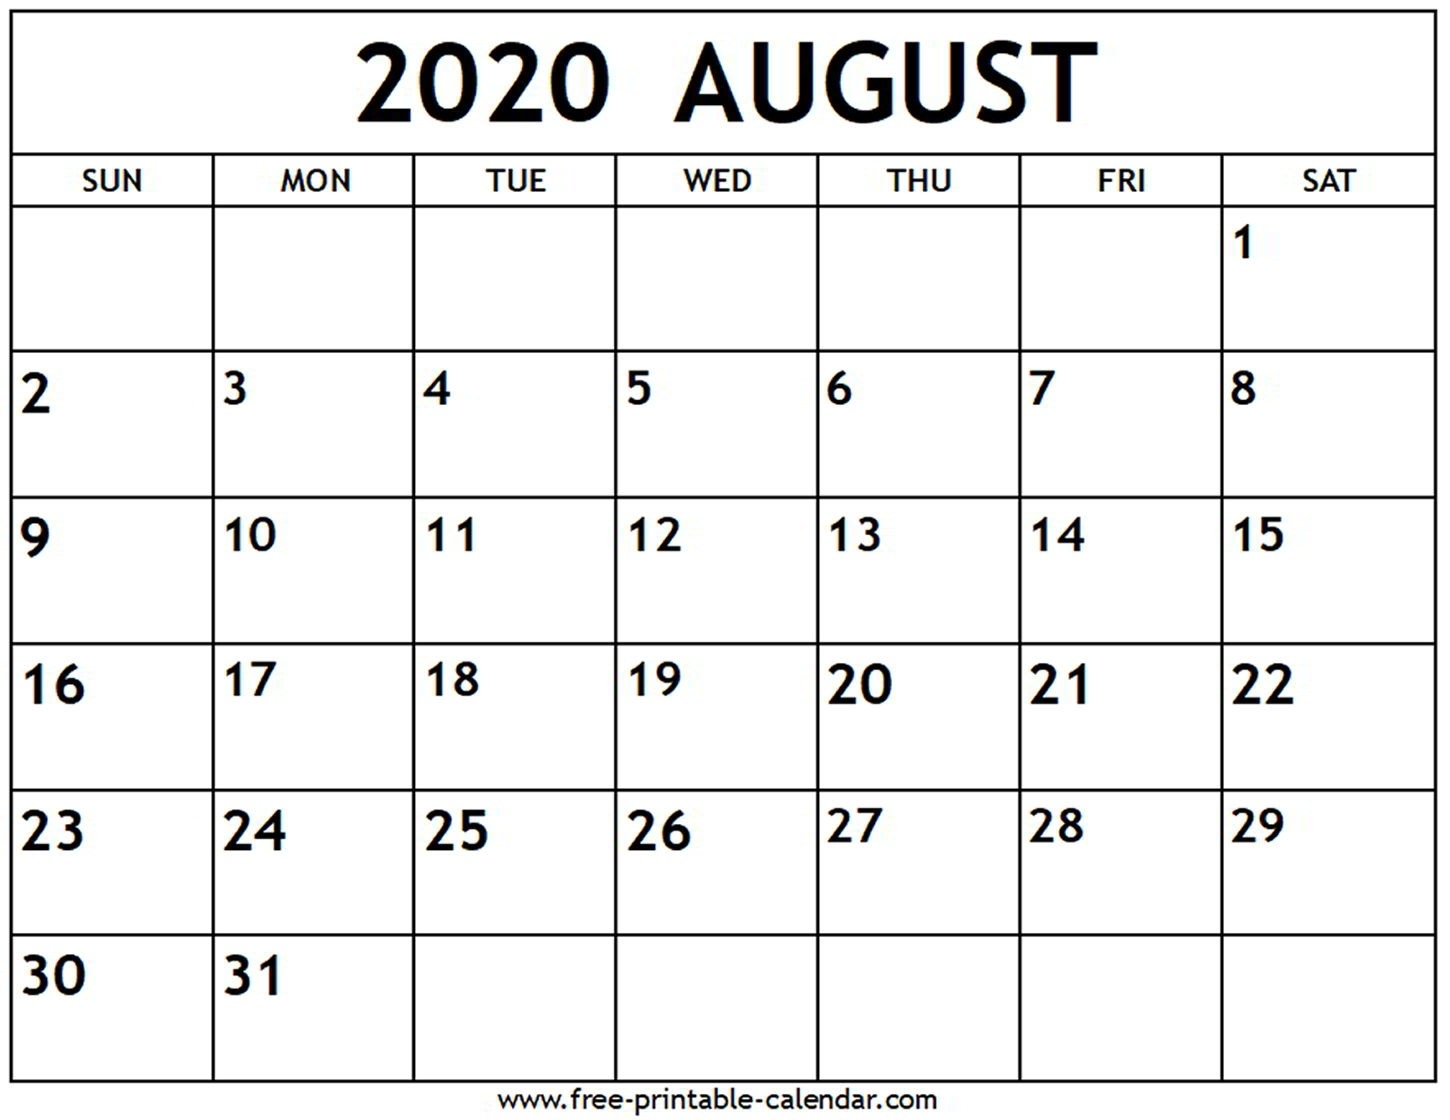 July 2020 Calendar Template - Yeter.wpart.co-June July 2020 Monthly